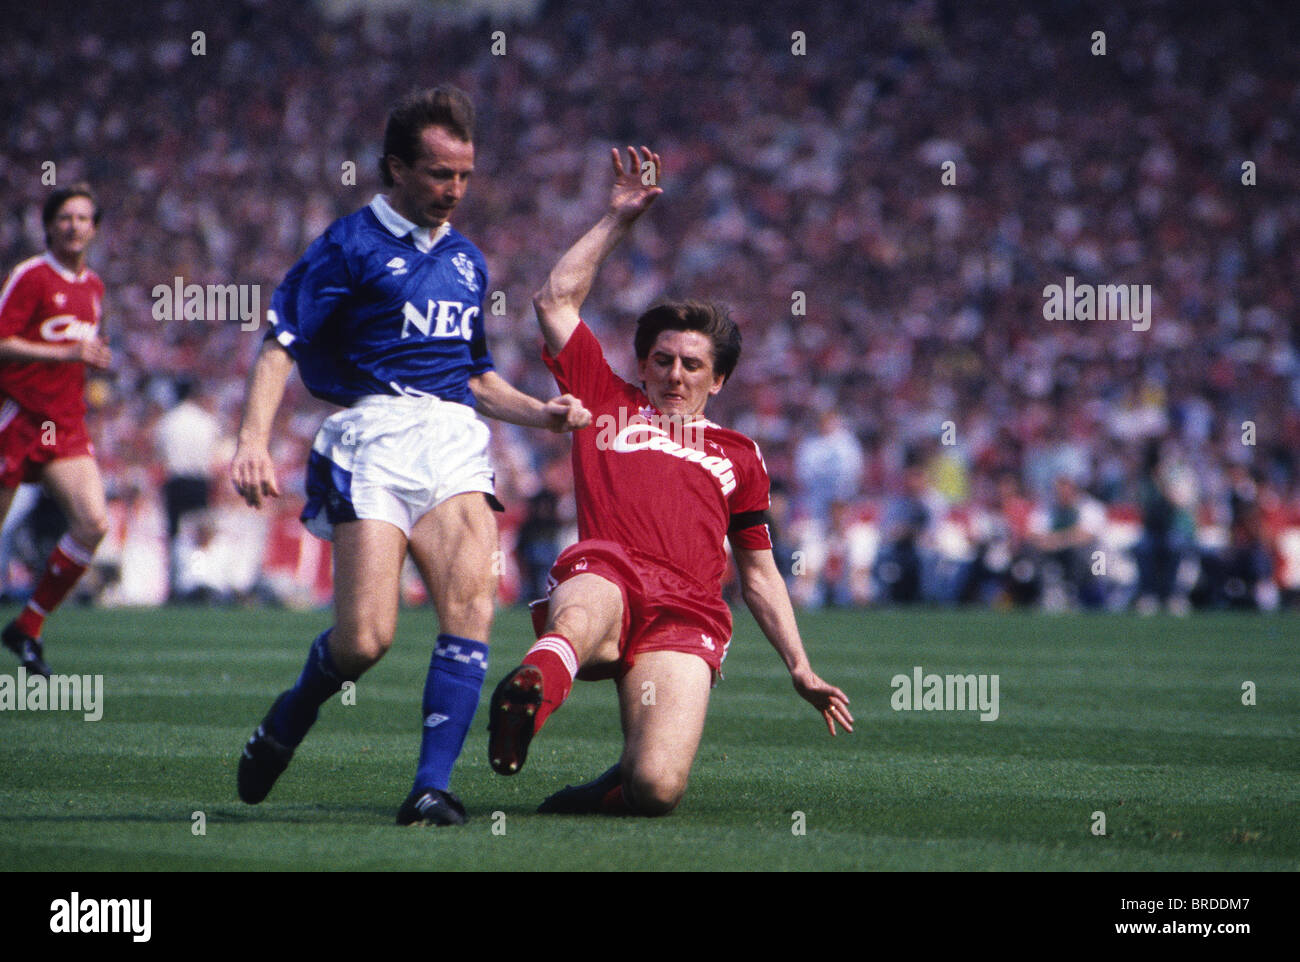 Everton V Liverpool in the 1989 FA Cup Final Peter Beardsley and Trevor Steven - Stock Image